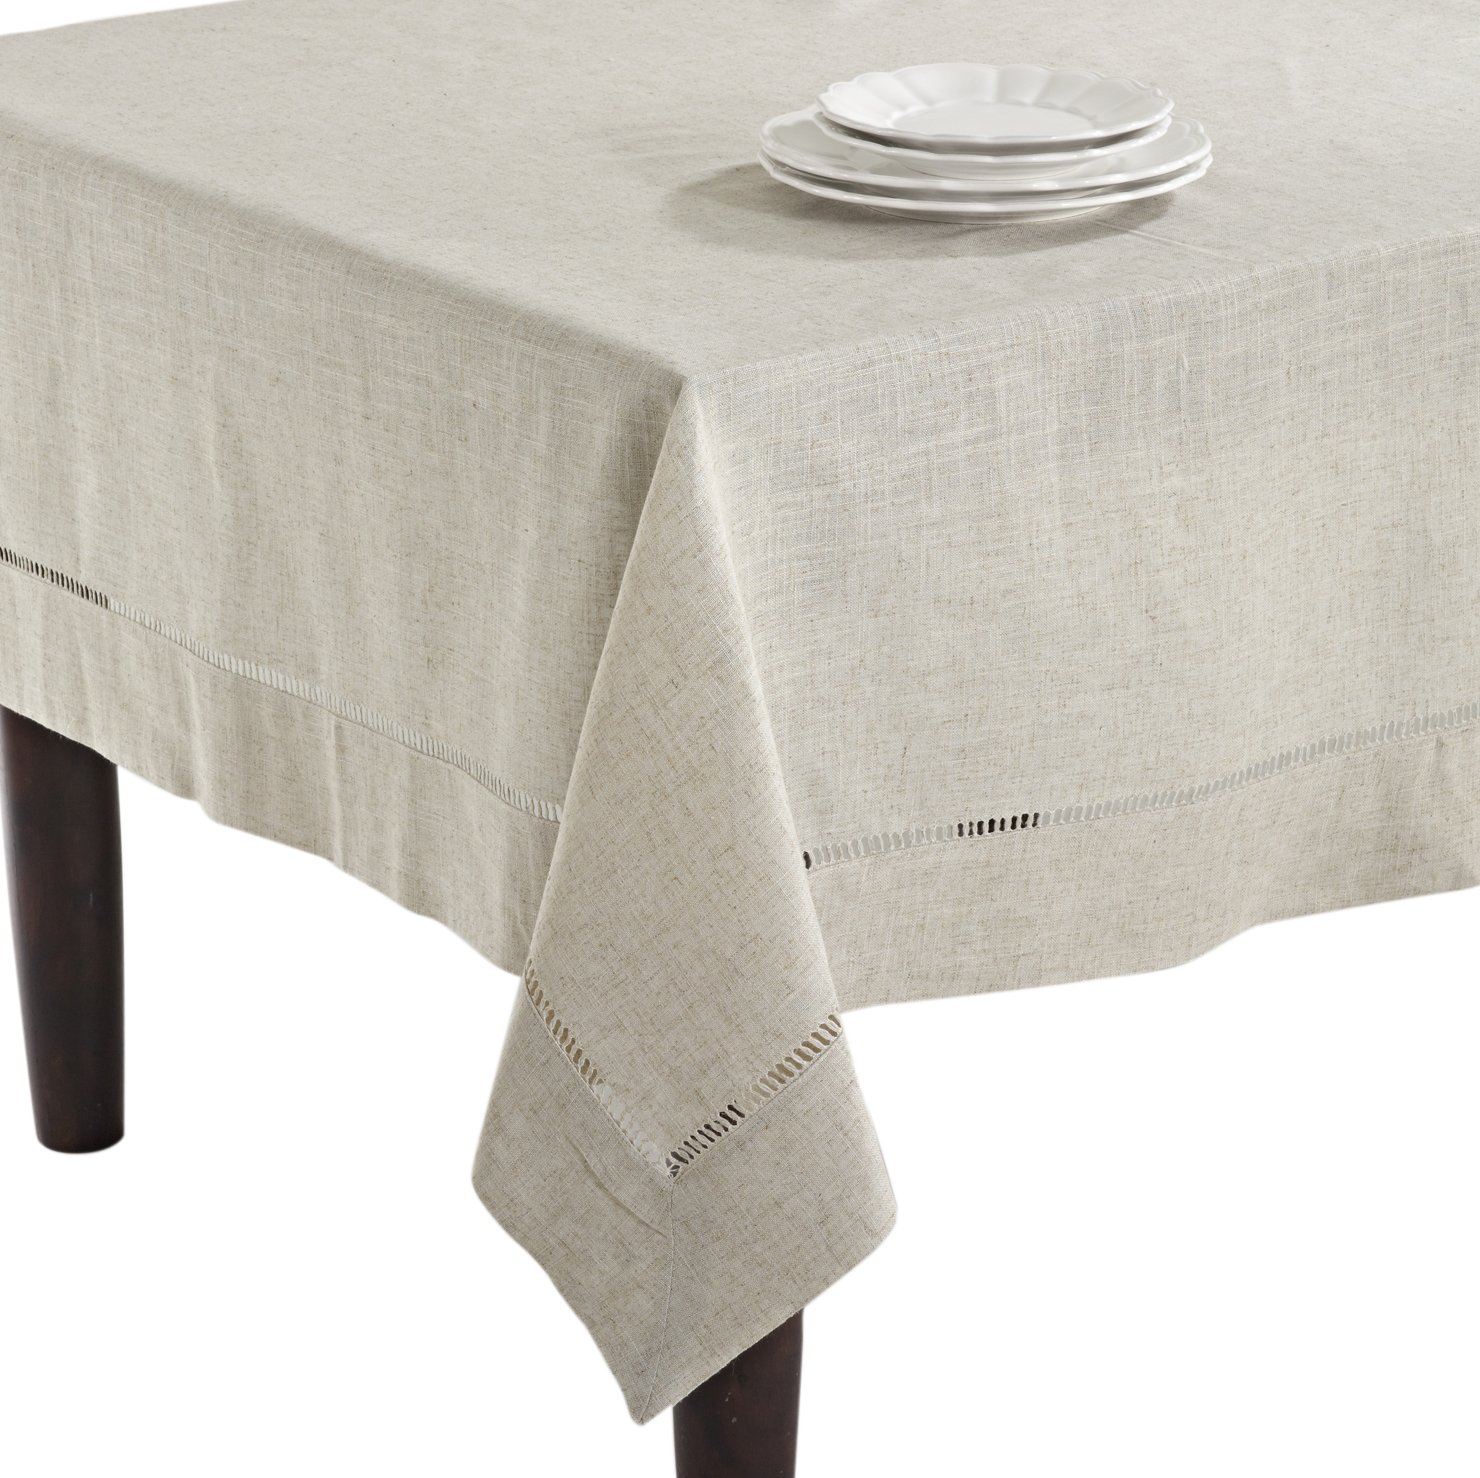 SARO LIFESTYLE 731 Toscana Tablecloths, 65 by 160-Inch, Oblong, Natural